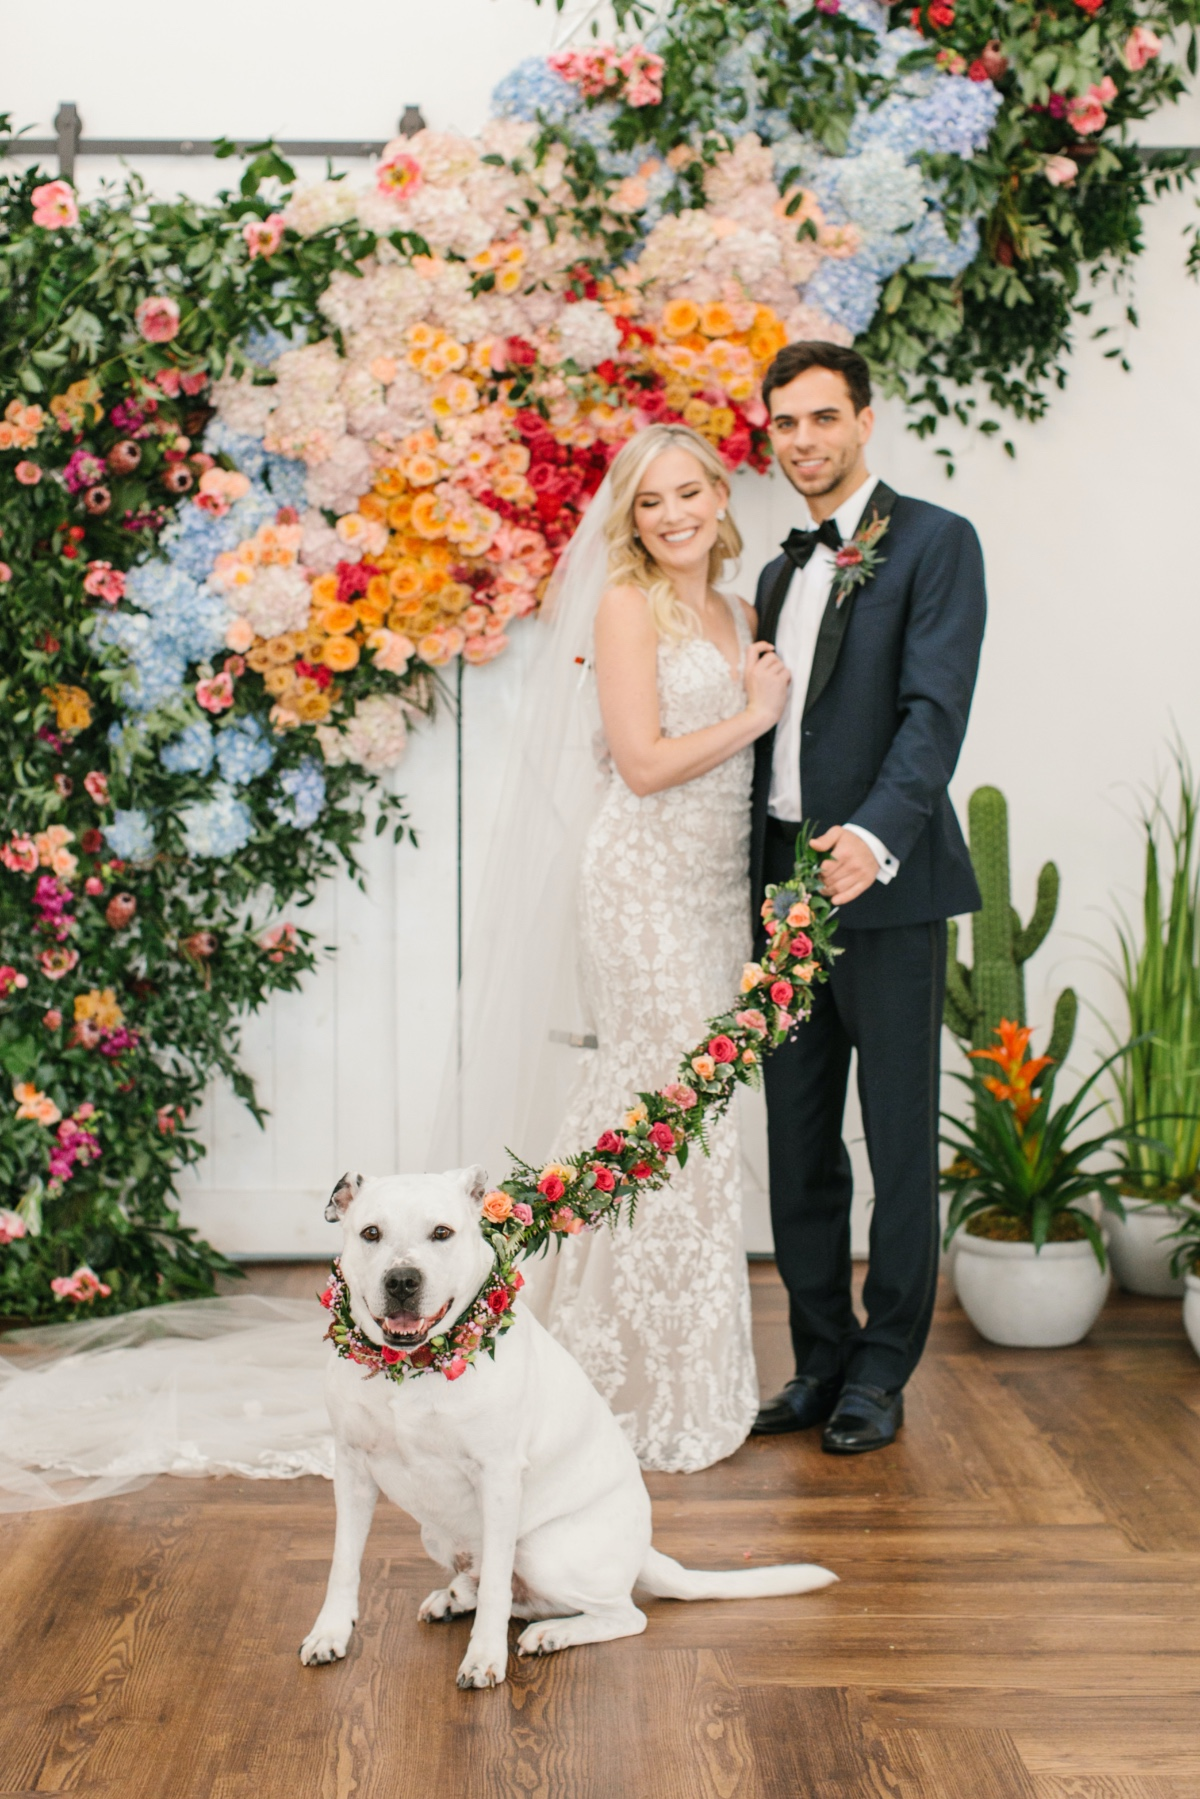 How to incorporate your dog into your wedding